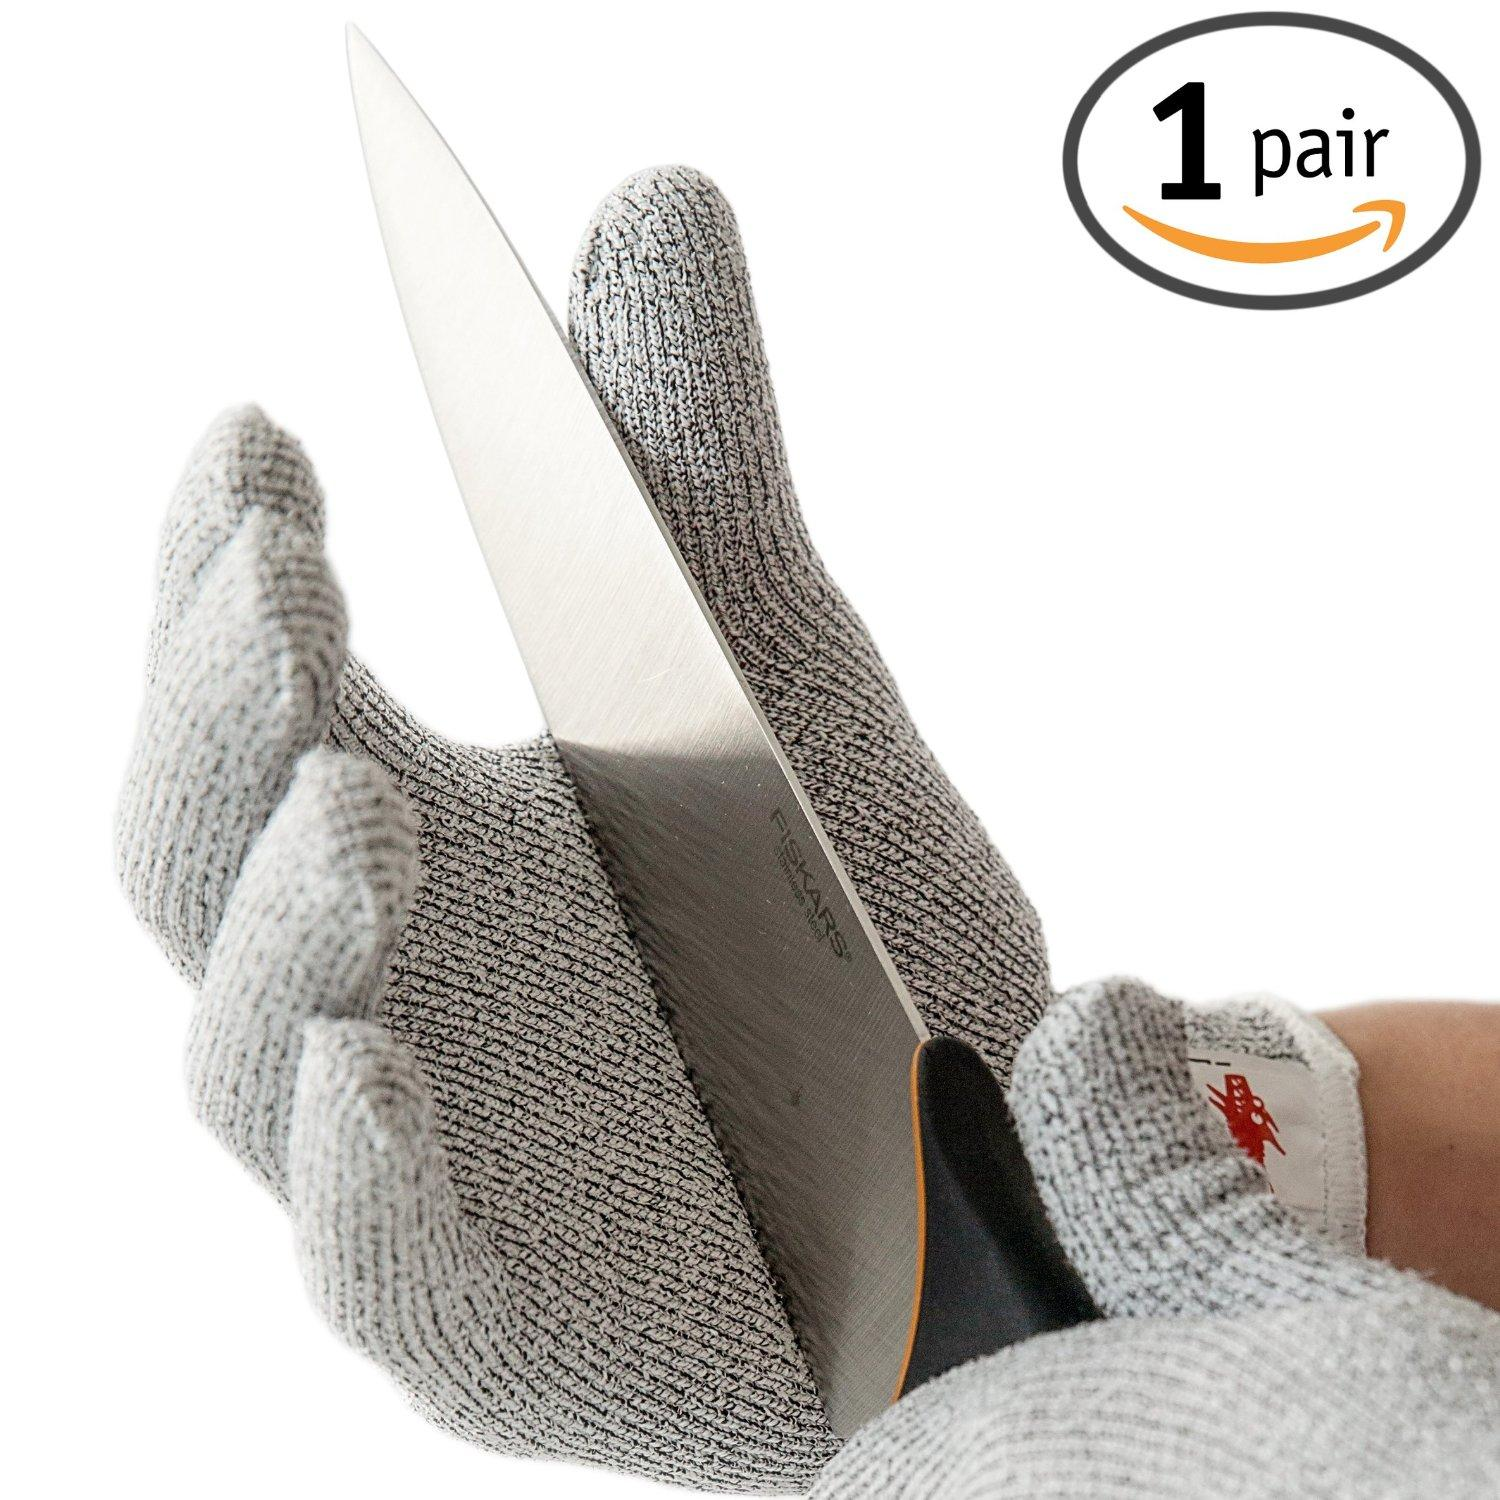 NoCry Cut Resistant Gloves - High Performance Level 5 Protection